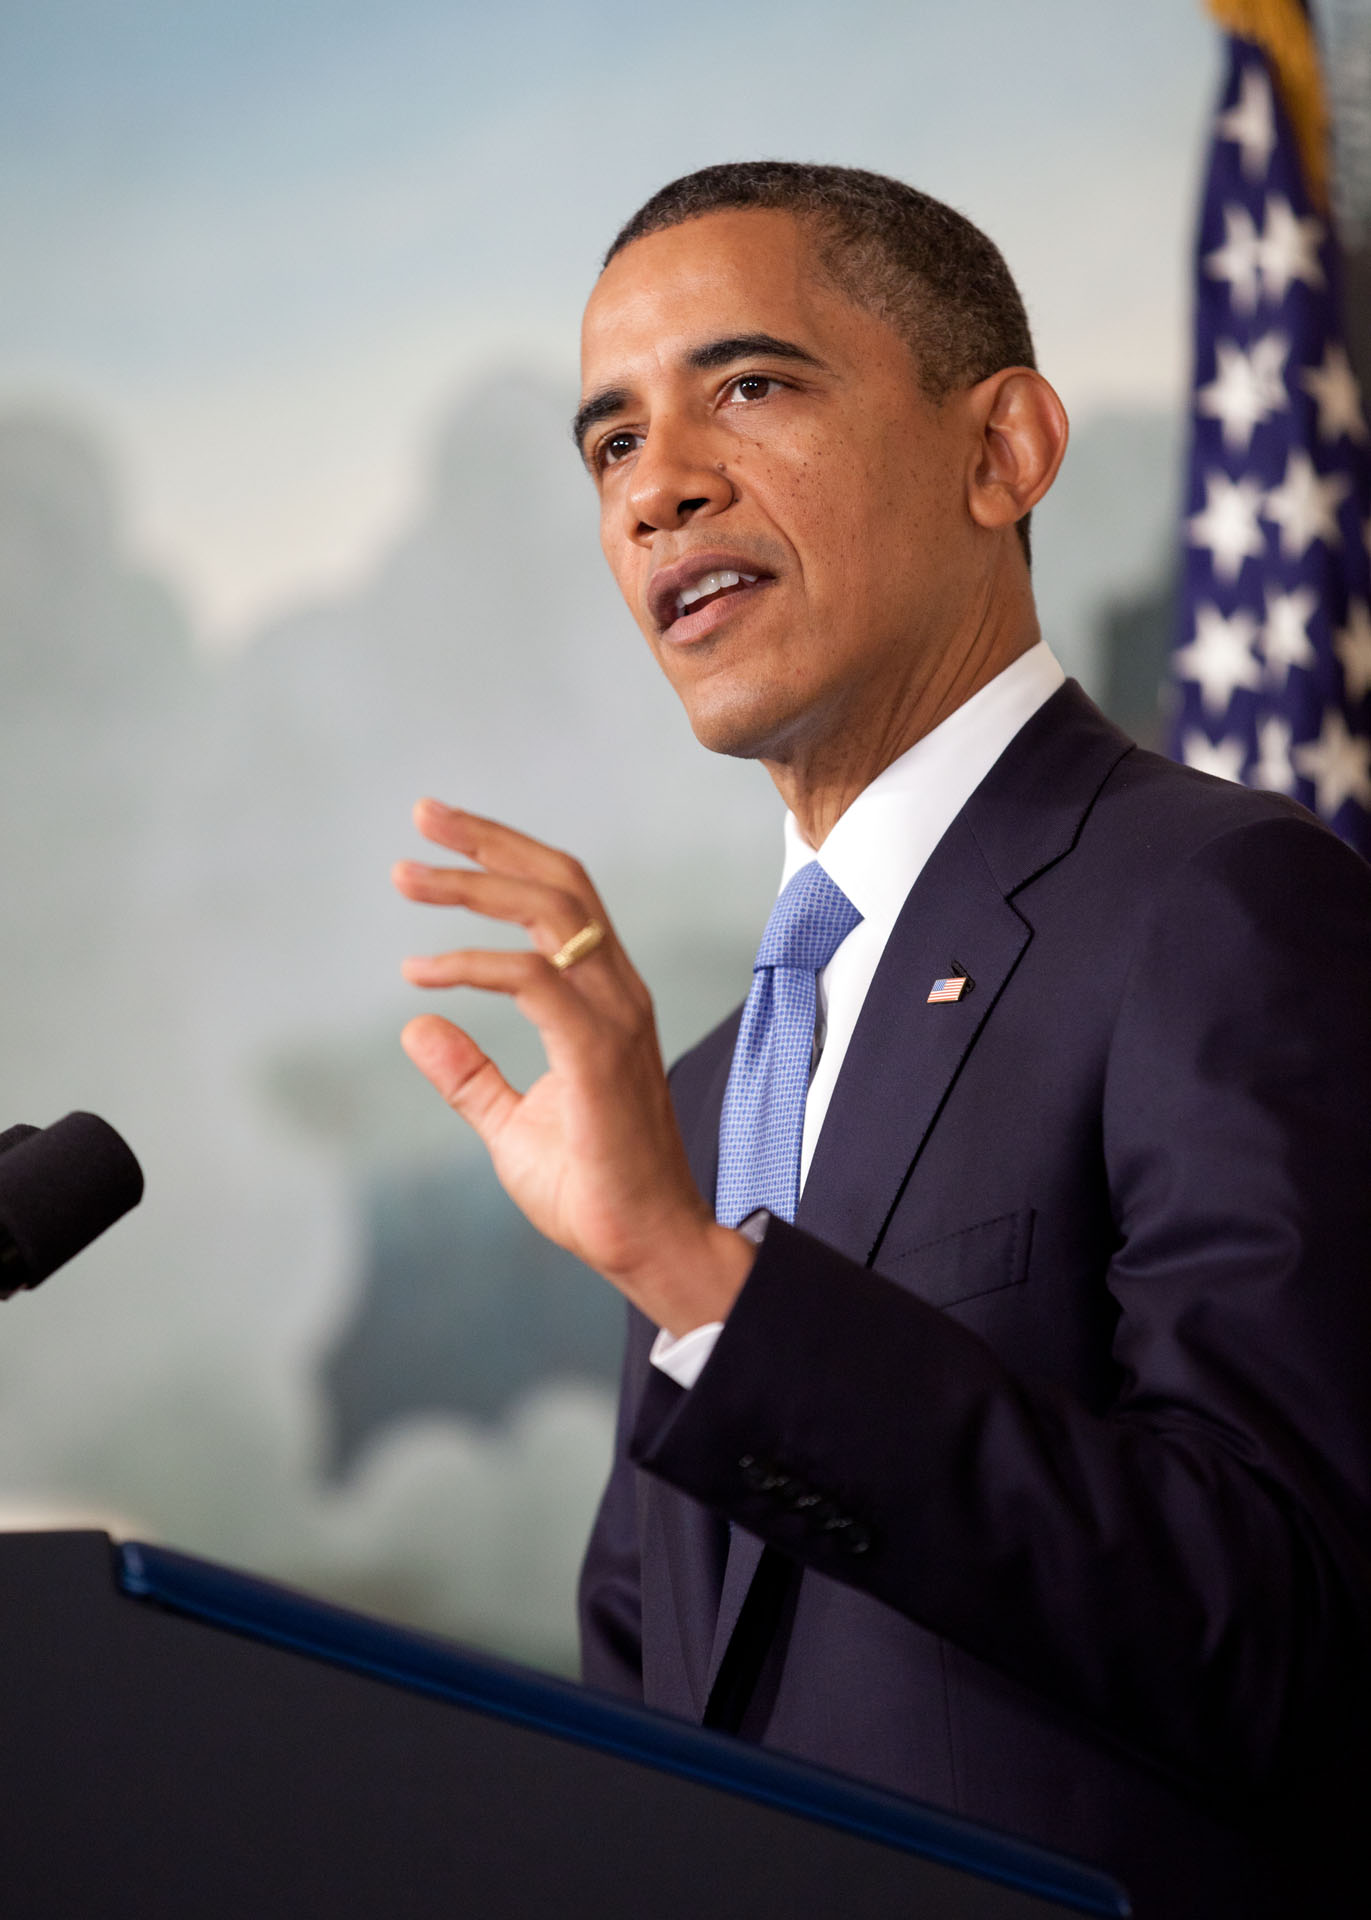 President Barack Obama Delivers a Statement on the Ongoing Budget Negotiations